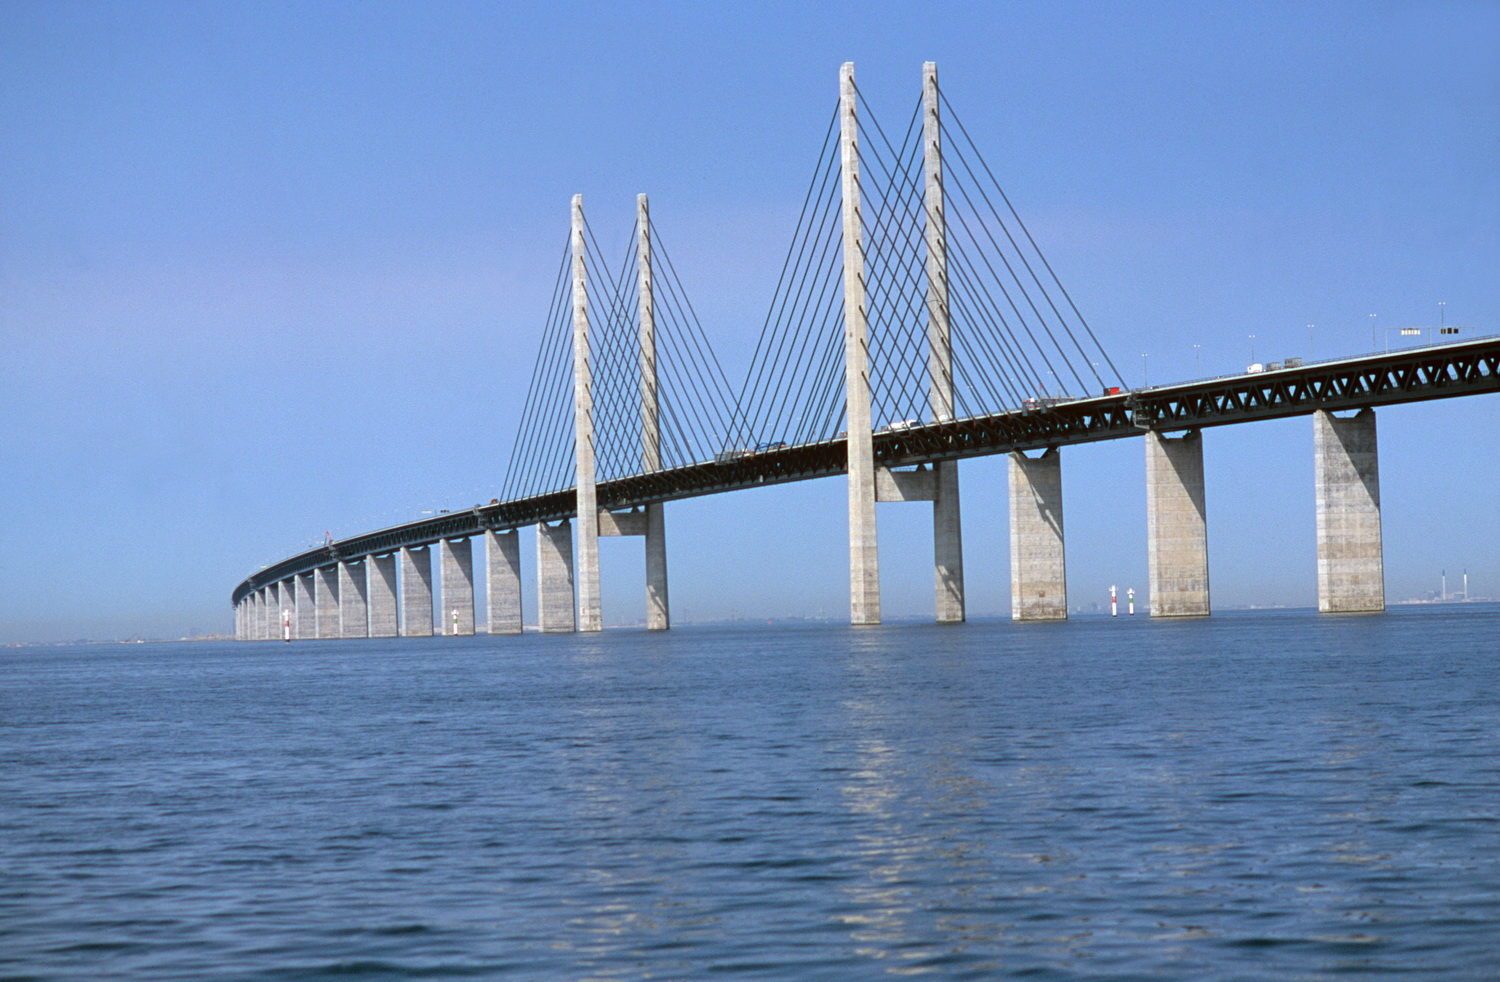 Epic project management the Øresund bridge episode